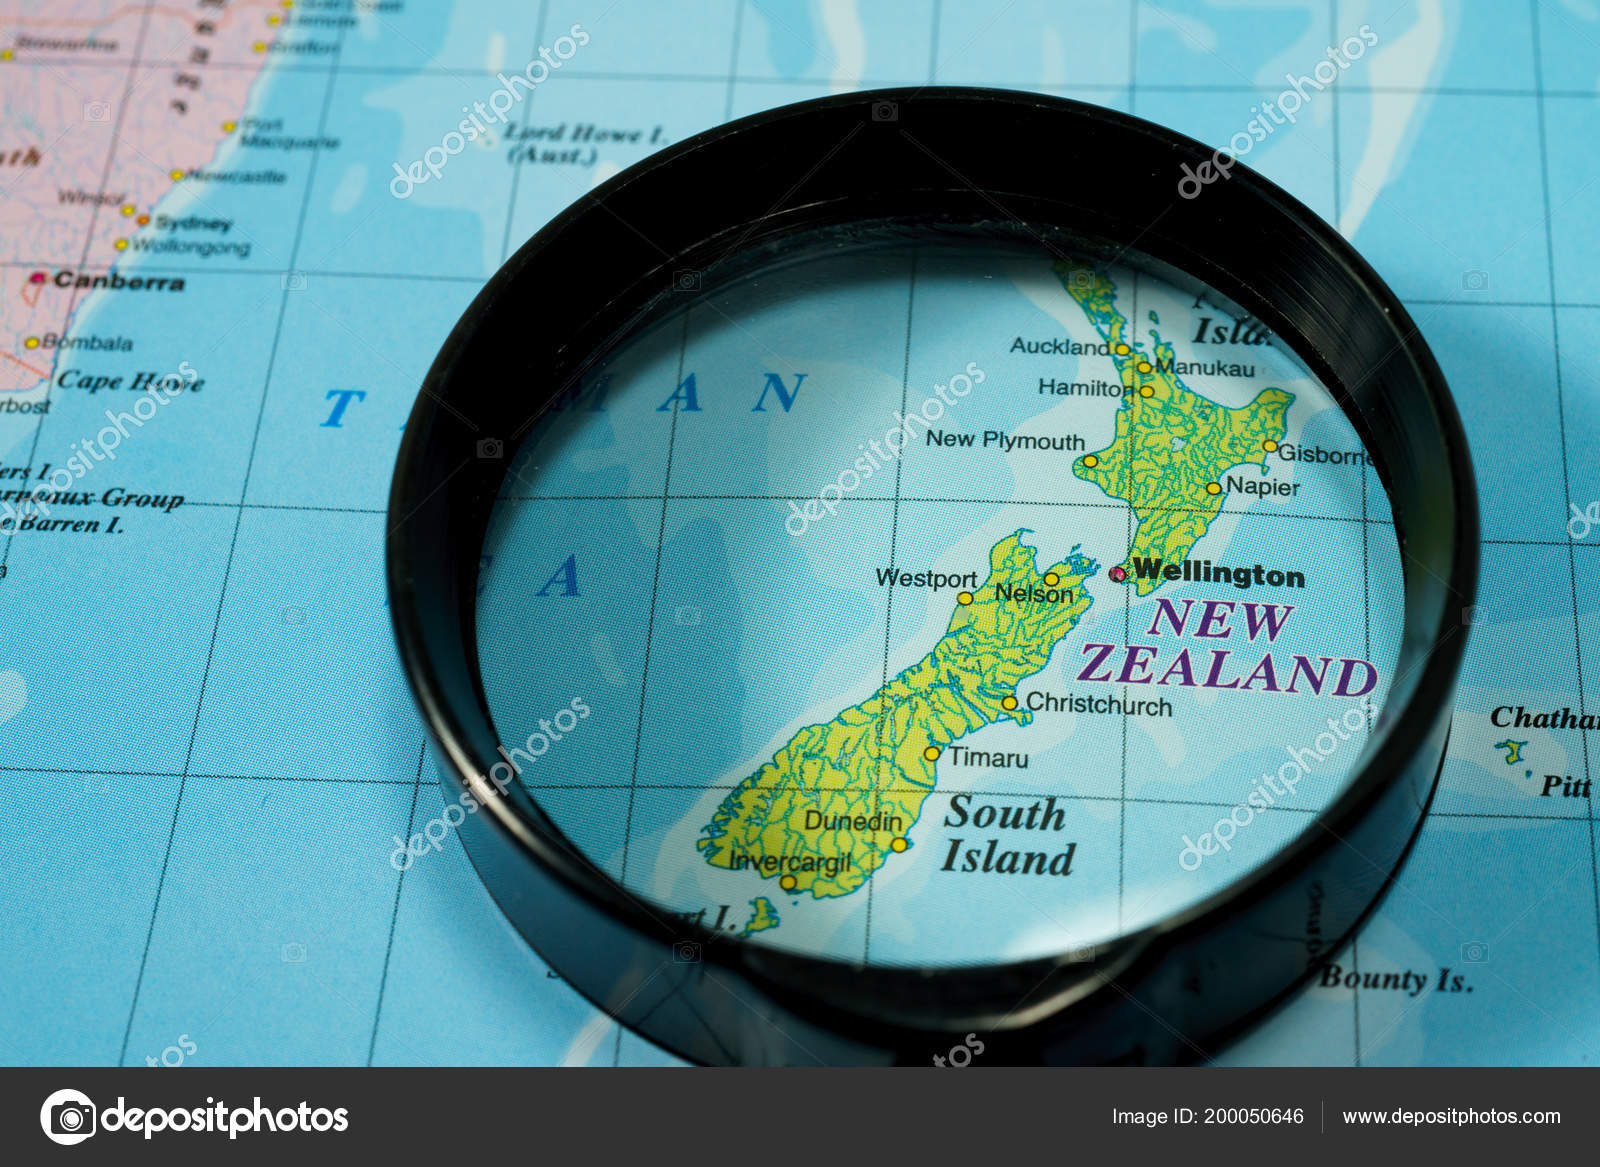 New Zealand On The Map.New Zealand Map Stock Photo C Aallm 200050646